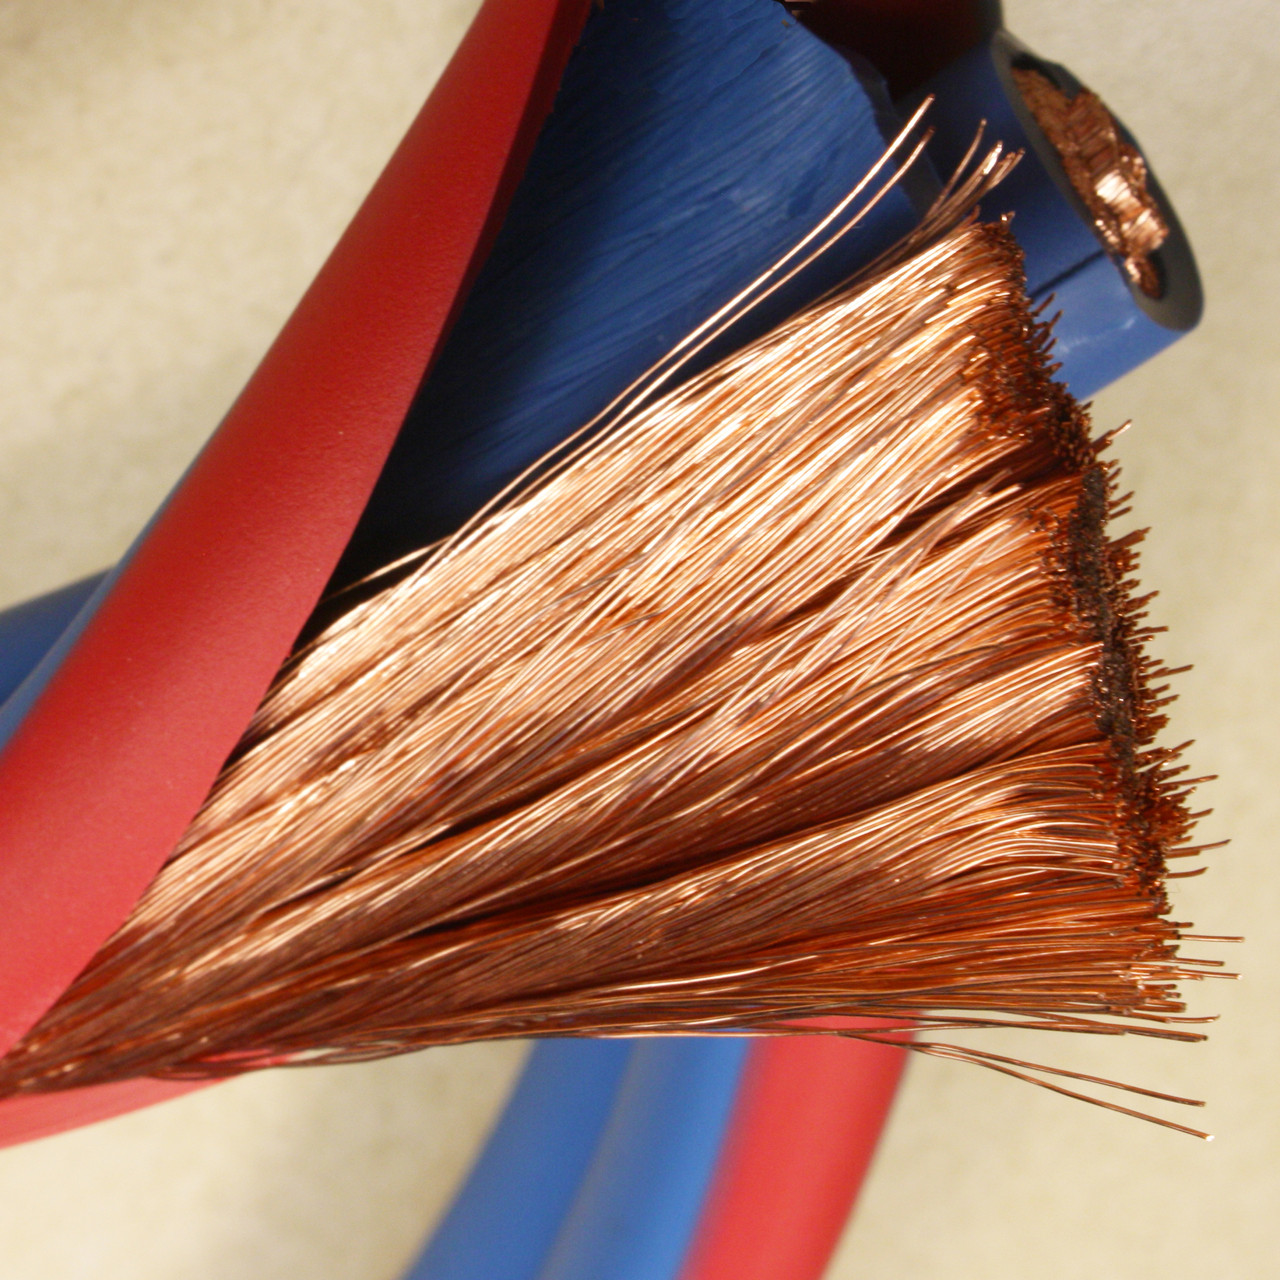 We make our Jumper Cables with Arctic Superflex Blue, a fine strand 100% copper double wire that stays flexible and easy to handle even in the worst weather